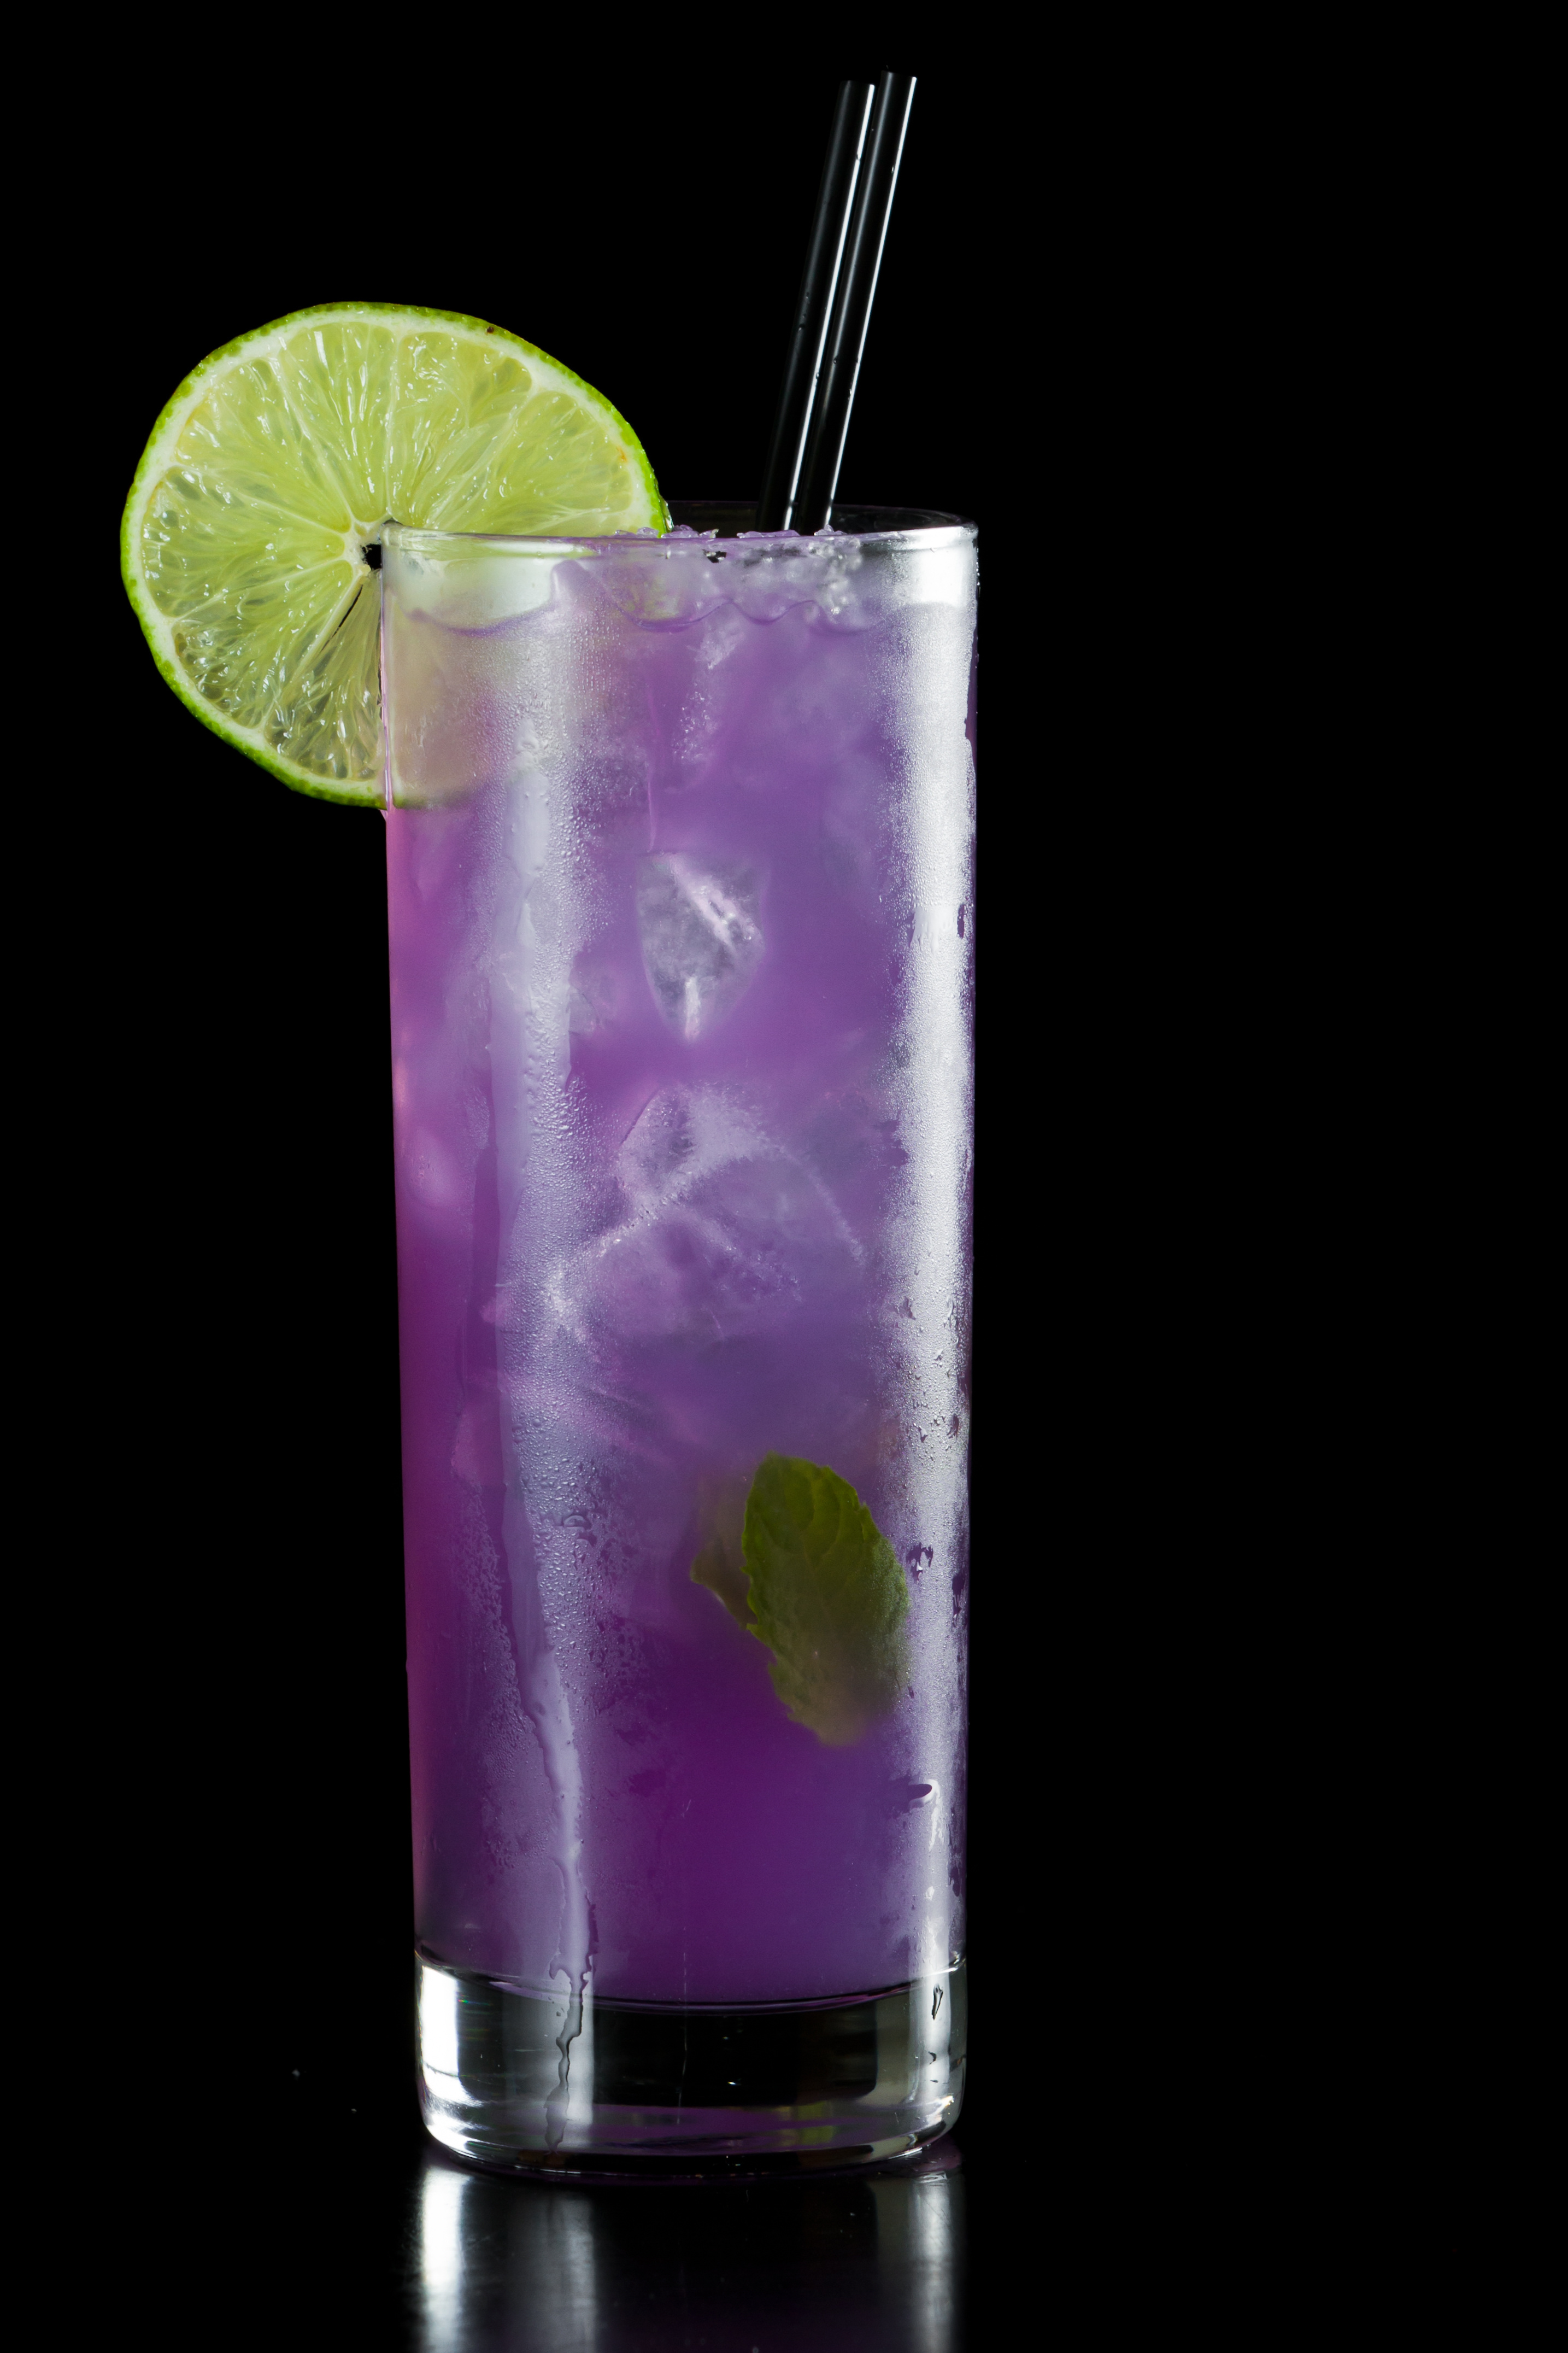 A purple rain cocktail has vodka, blue caracao, and a number of nonalcoholic juices in it.